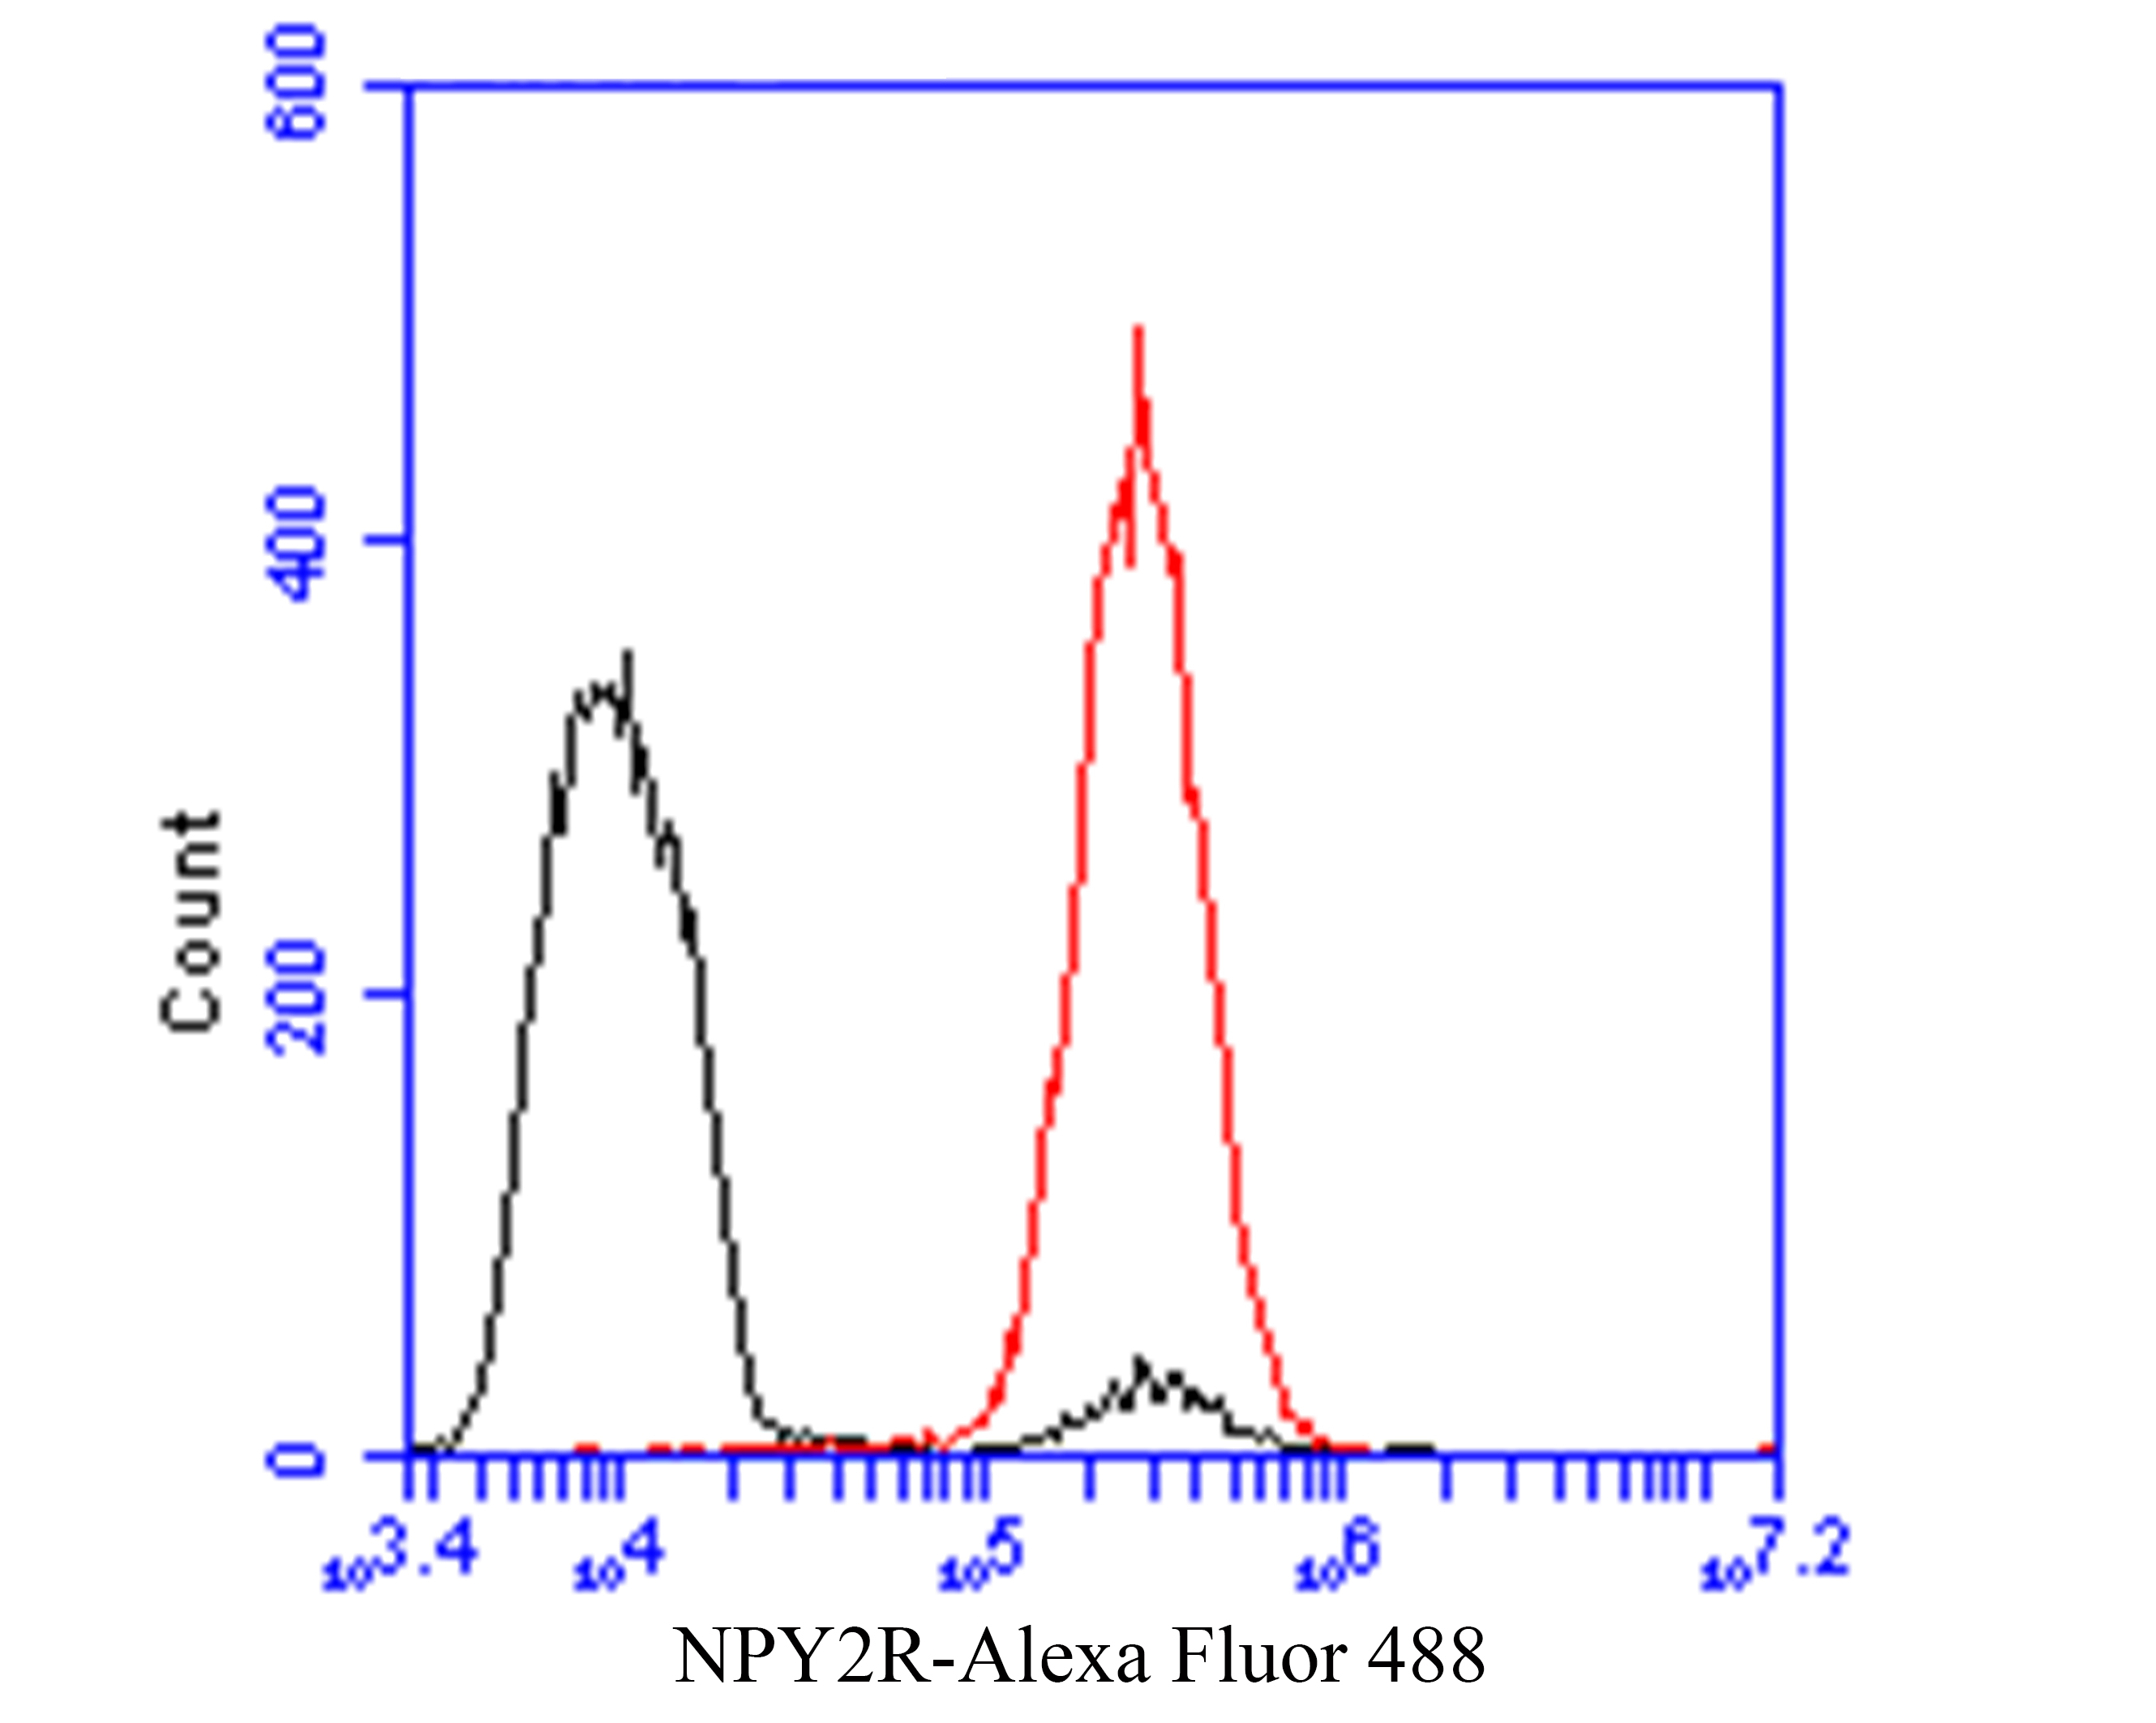 Flow cytometric analysis of NPY2R / Y2 receptor was done on MCF-7 cells. The cells were fixed, permeabilized and stained with the primary antibody (ER1901-14, 1/50) (red). After incubation of the primary antibody at room temperature for an hour, the cells were stained with a Alexa Fluor 488-conjugated Goat anti-Rabbit IgG Secondary antibody at 1/1000 dilution for 30 minutes.Unlabelled sample was used as a control (cells without incubation with primary antibody; black).